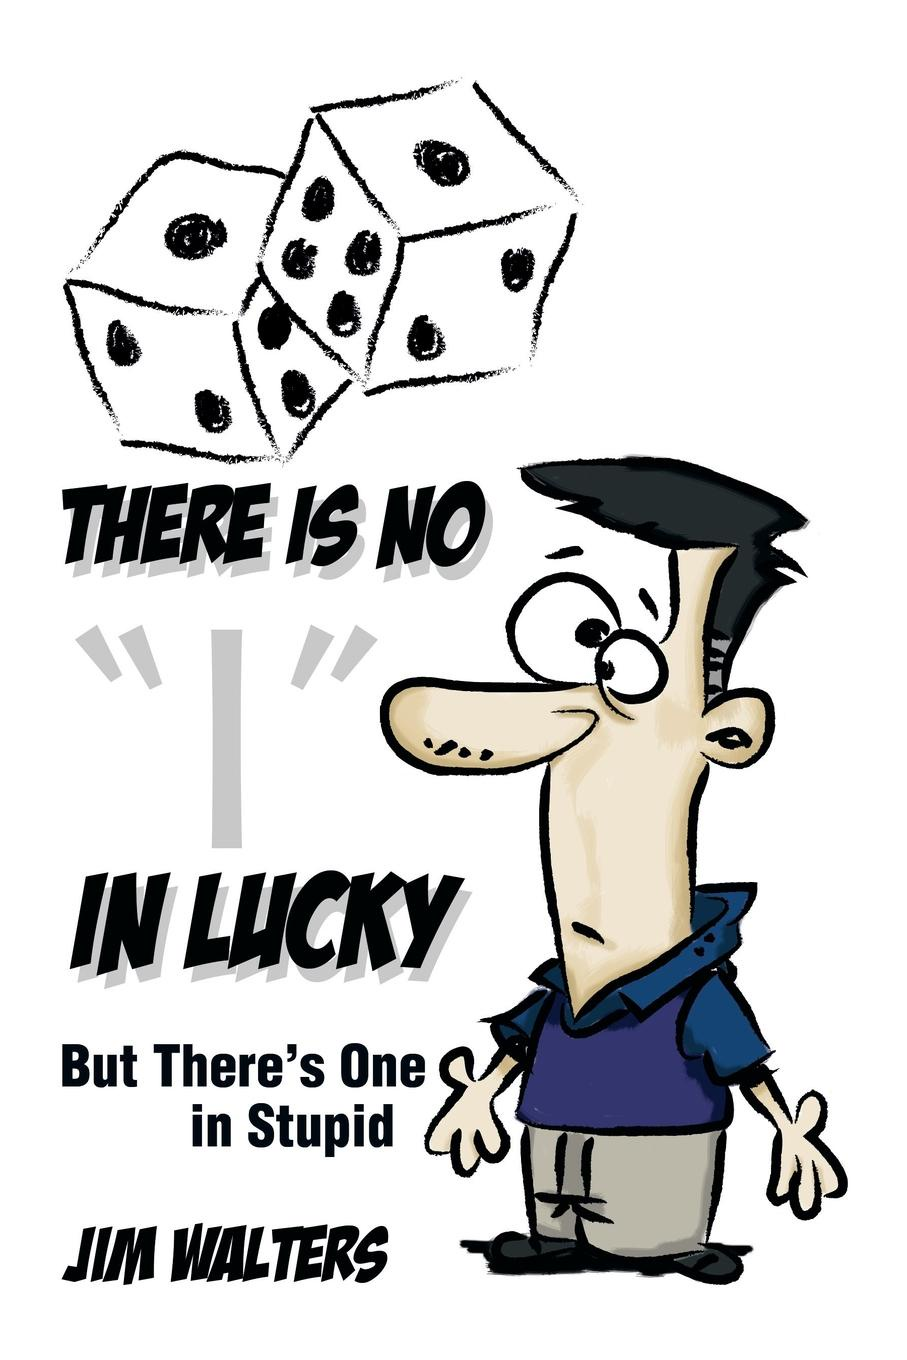 Jim Walters There Is No I in Lucky. But Theres One Stupid